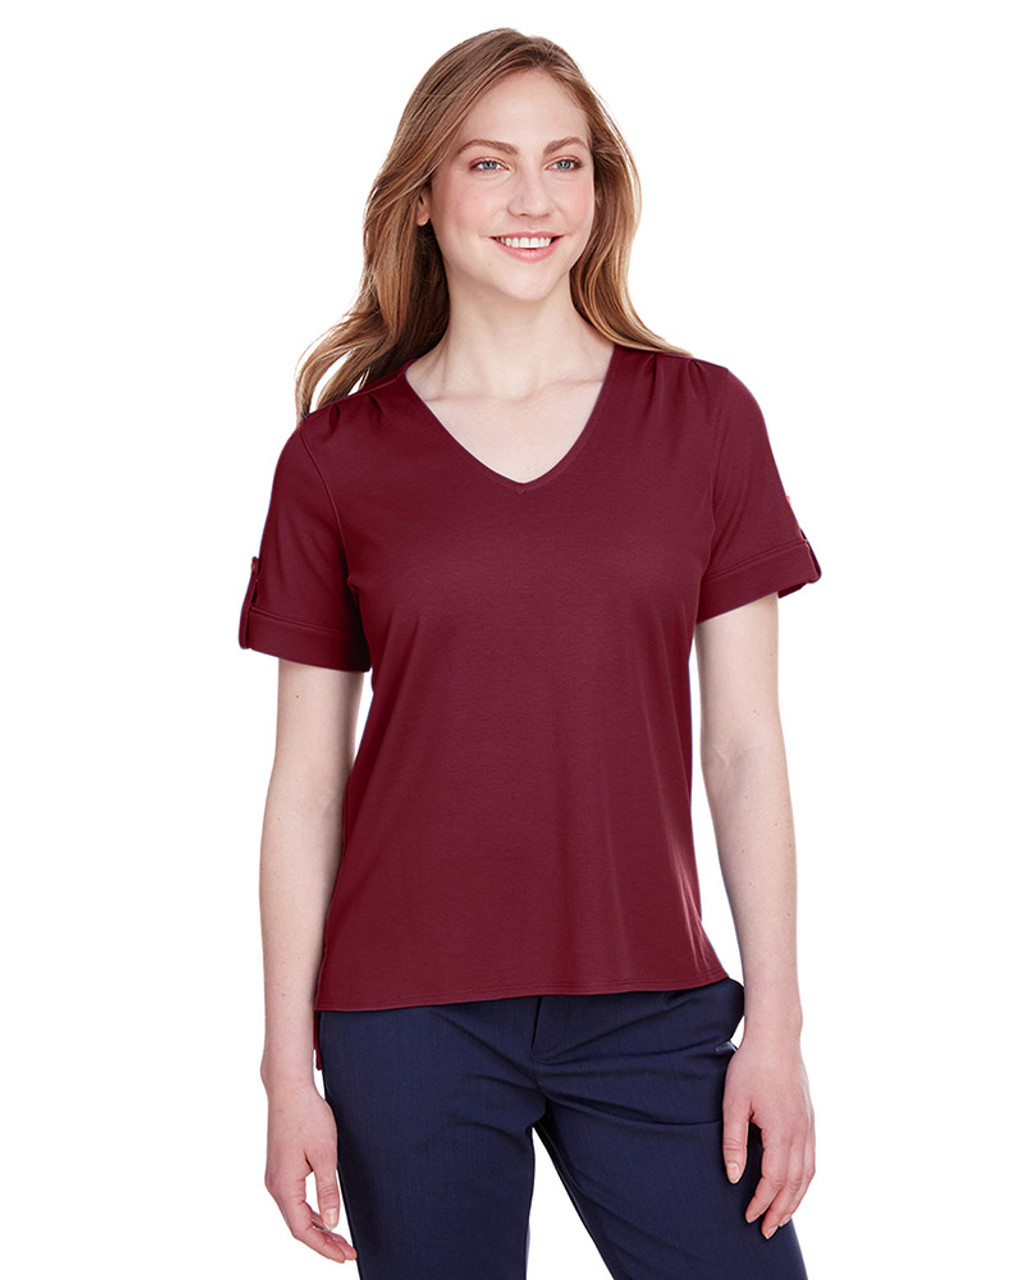 Burgundy - DG20WB Devon & Jones Ladies' CrownLux Performance™ Plaited Rolled-Sleeve Top | Blankclothing.ca